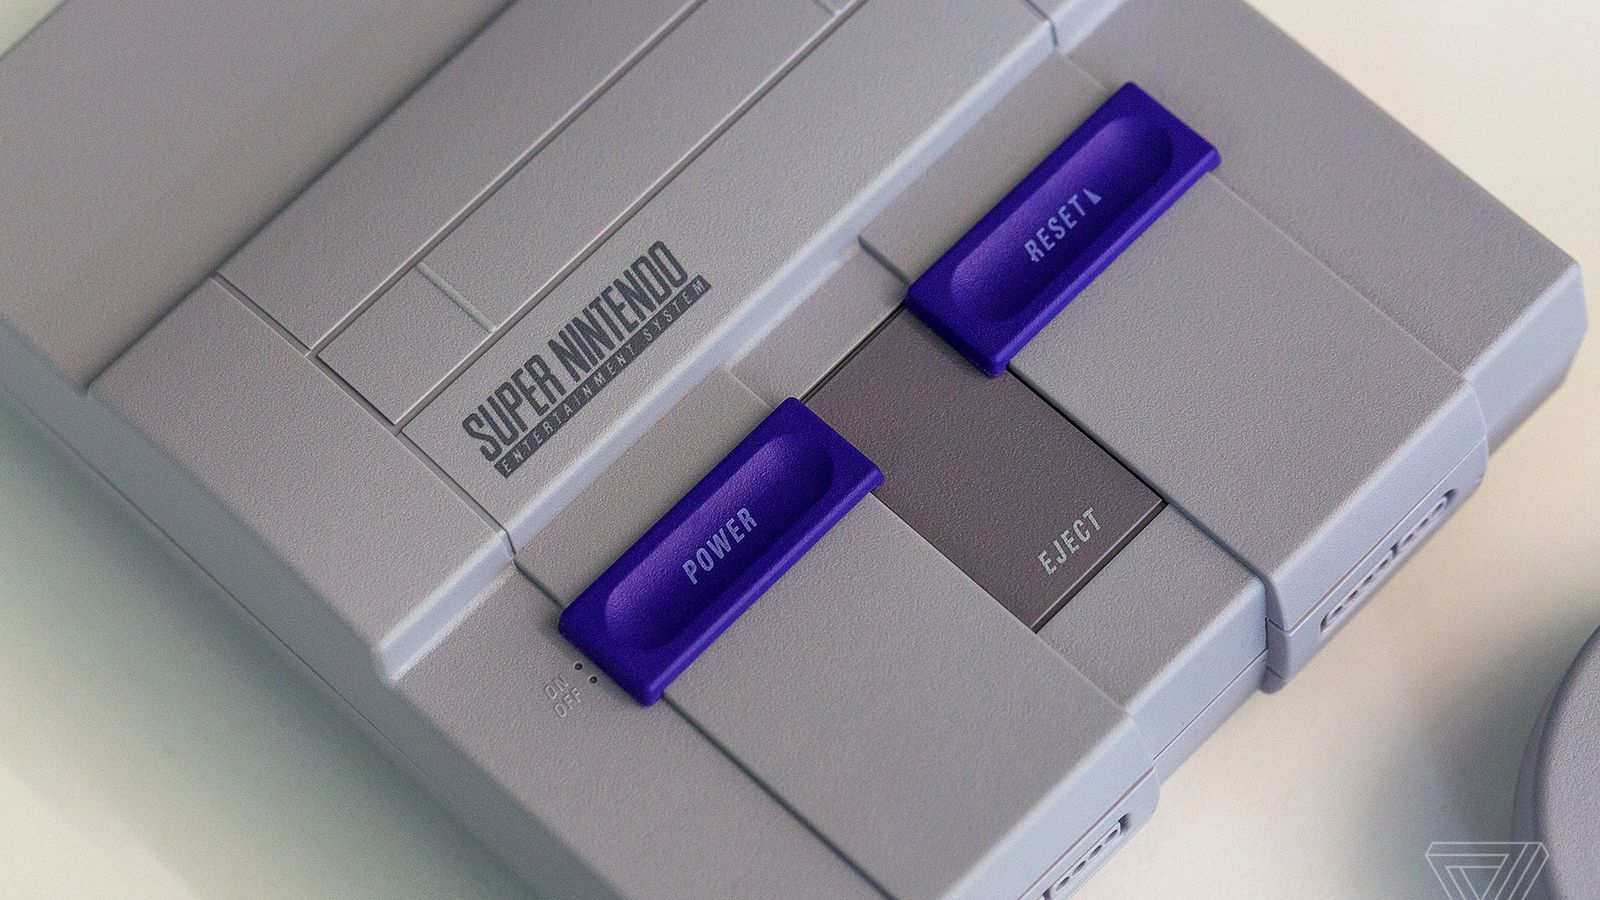 SNES Classic preorders are available today at physical GameStop stores